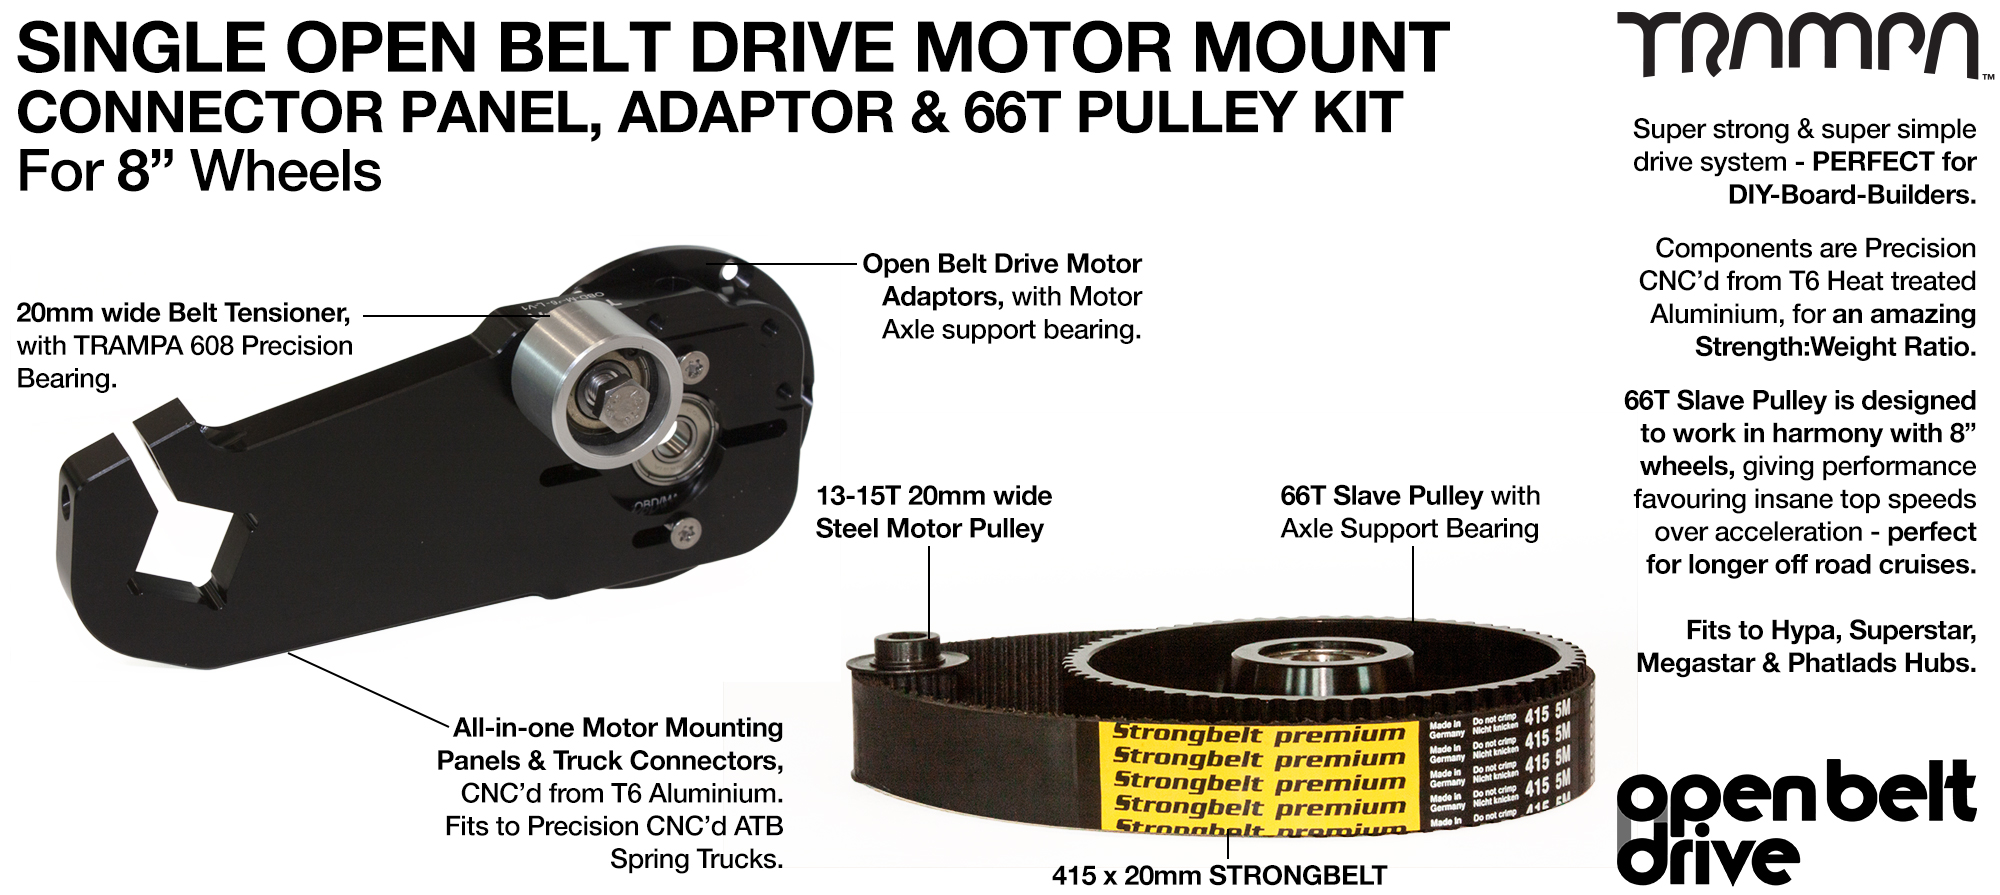 66T OBD Motor Mount & 66 tooth Pulley for 8 Inch Wheel - SINGLE